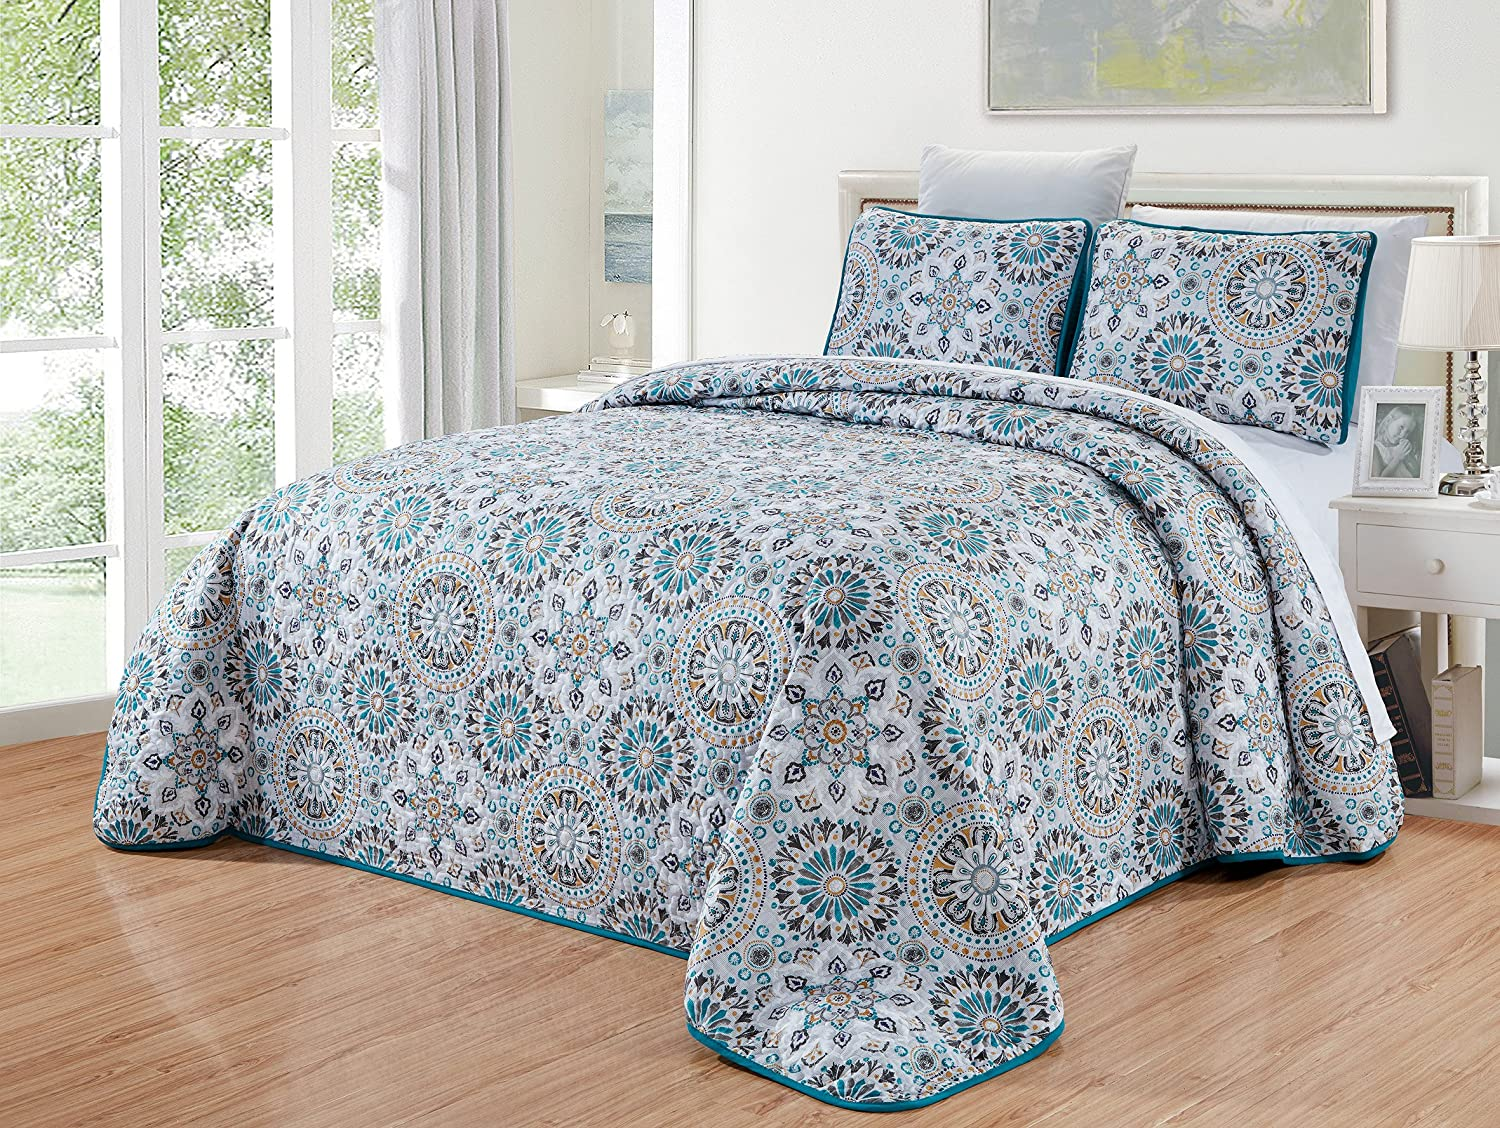 Aqua Blue, Grey, White Hibiscus Floral Quilt Set Reversible Bedspread Coverlet Twin//Twin XL Size Bed Cover 2-Piece Fine Printed Oversize 66 X 95